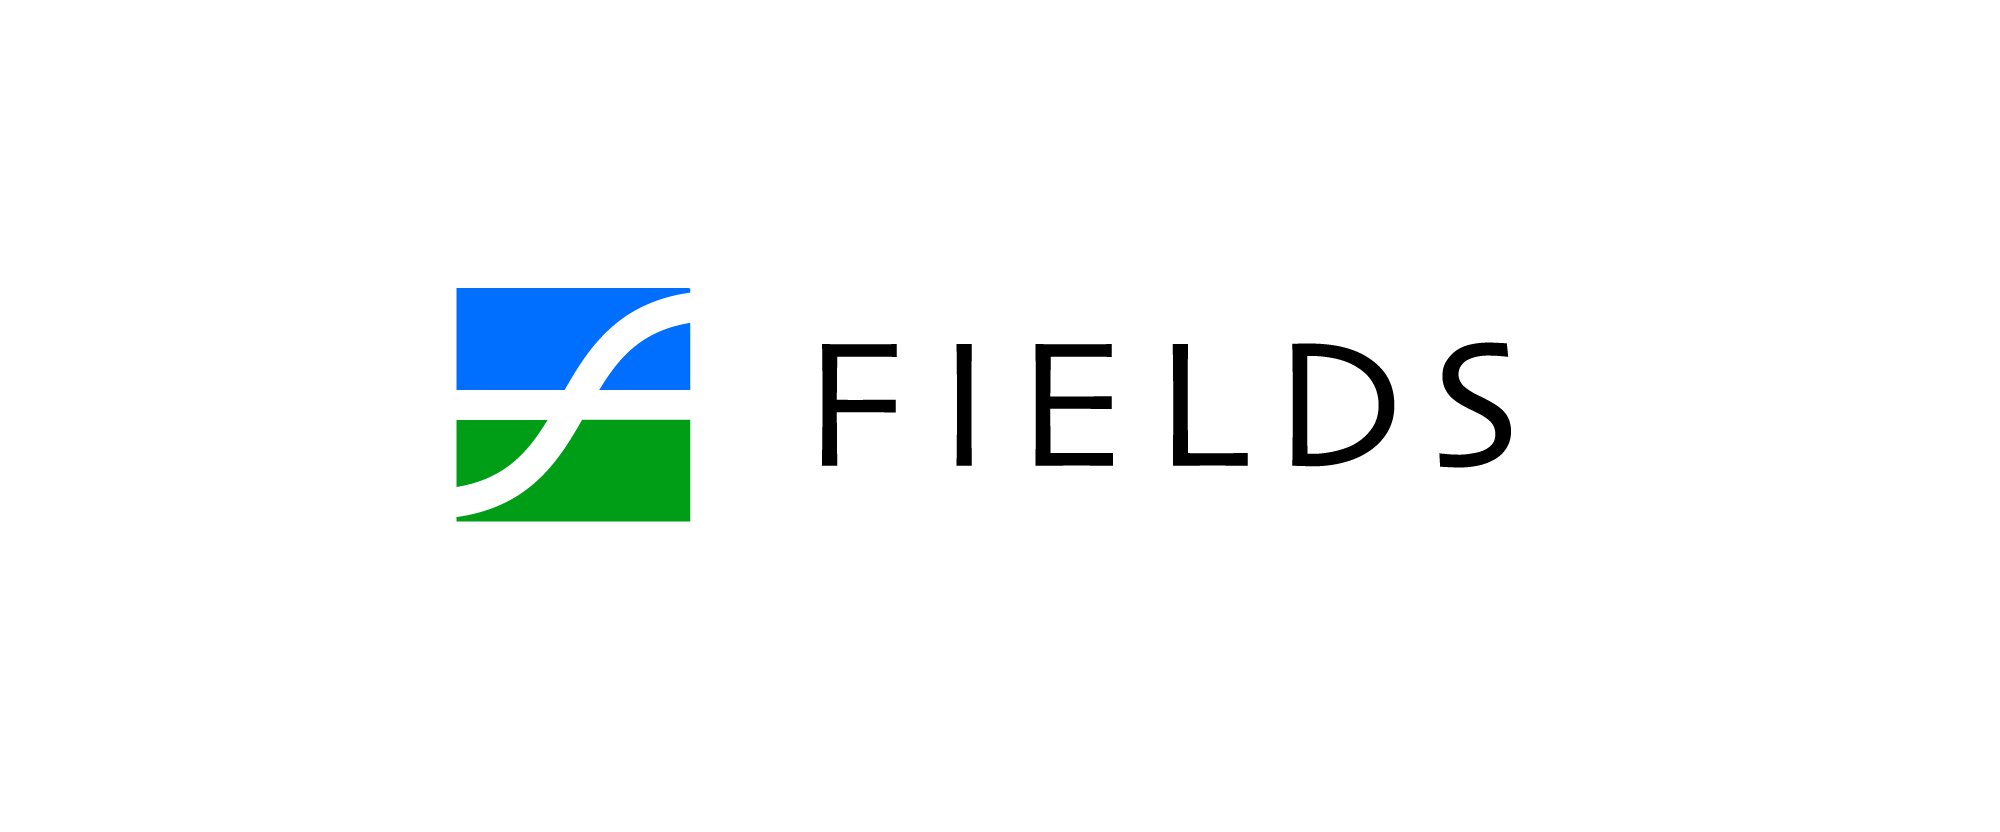 New Logo and Identity for Fields by Chermayeff & Geismar & Haviv